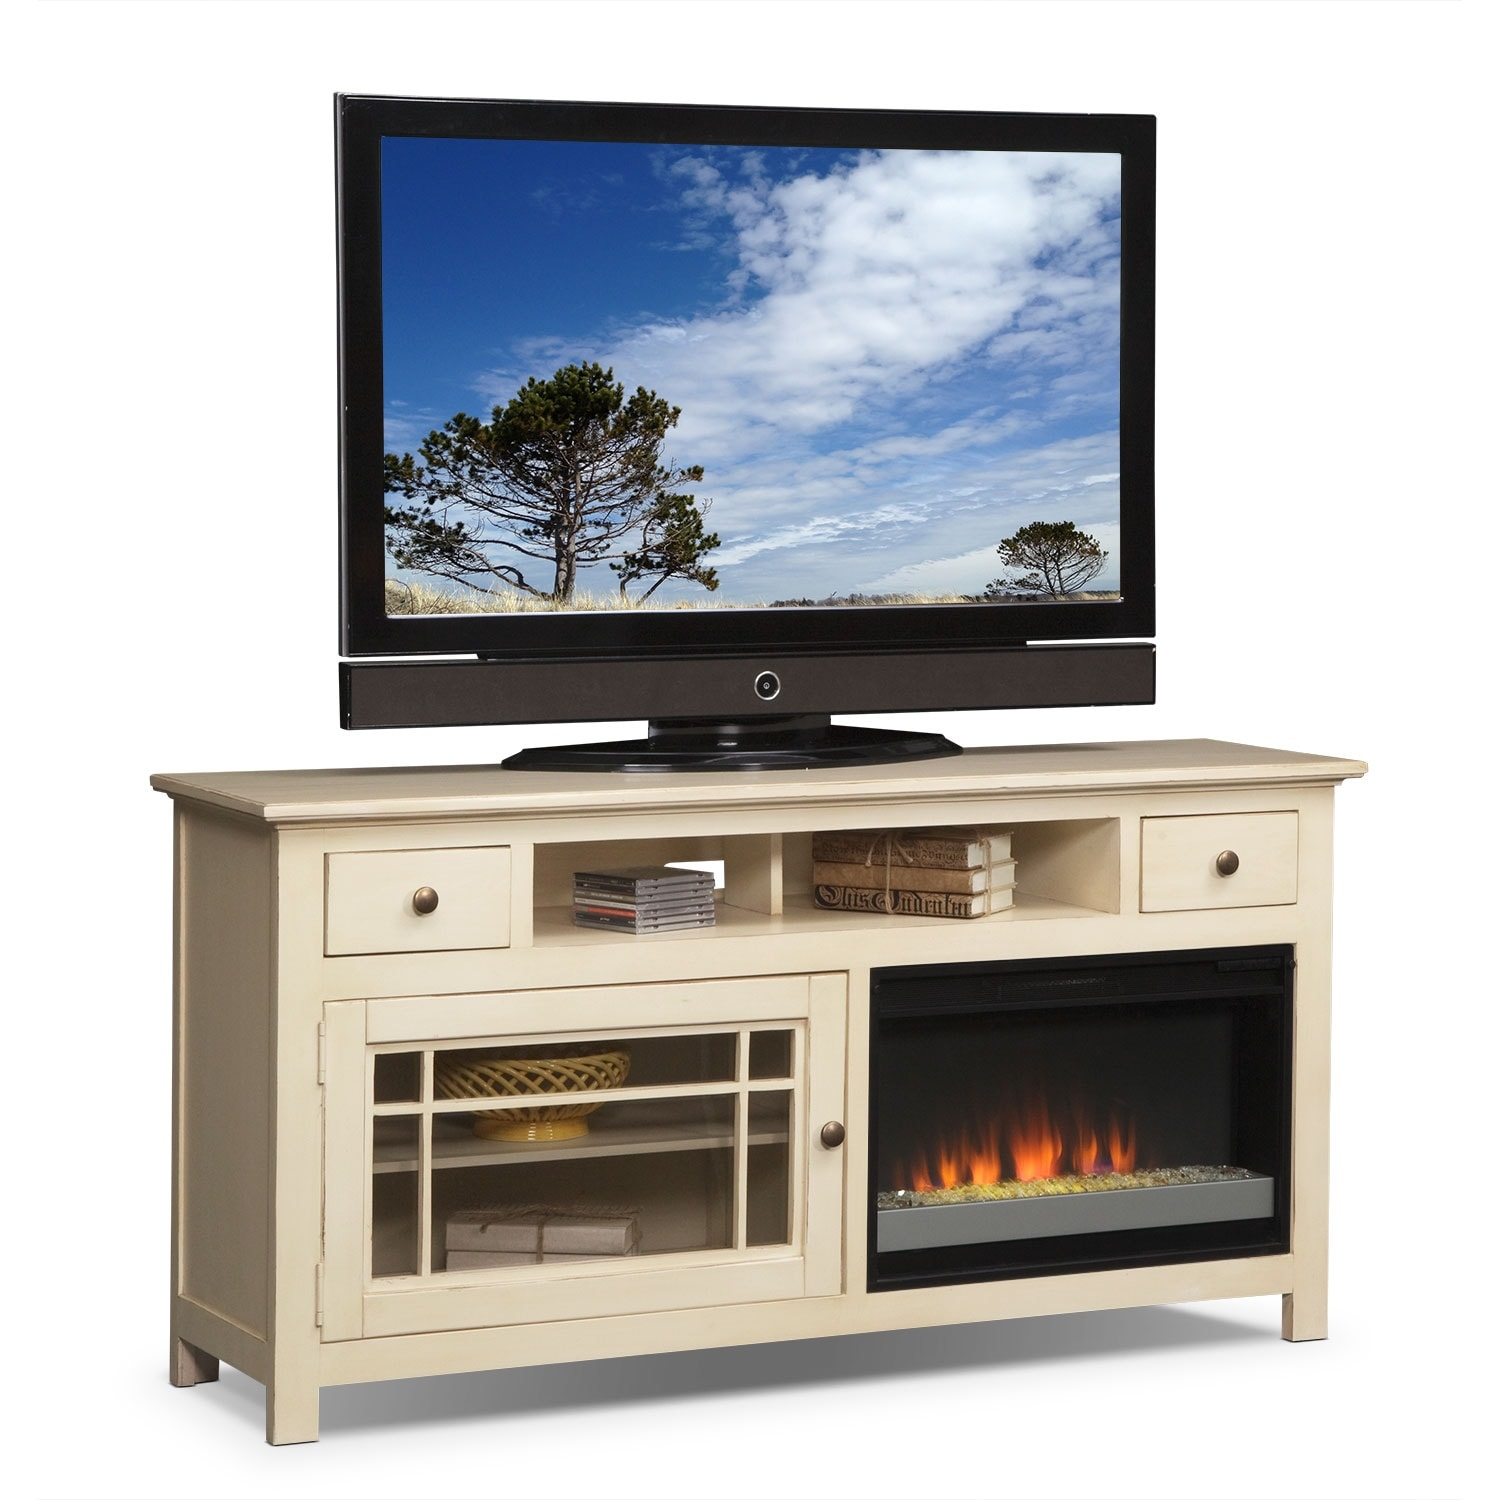 "Entertainment Furniture - Merrick 64"" Fireplace TV Stand with Contemporary Insert - White"